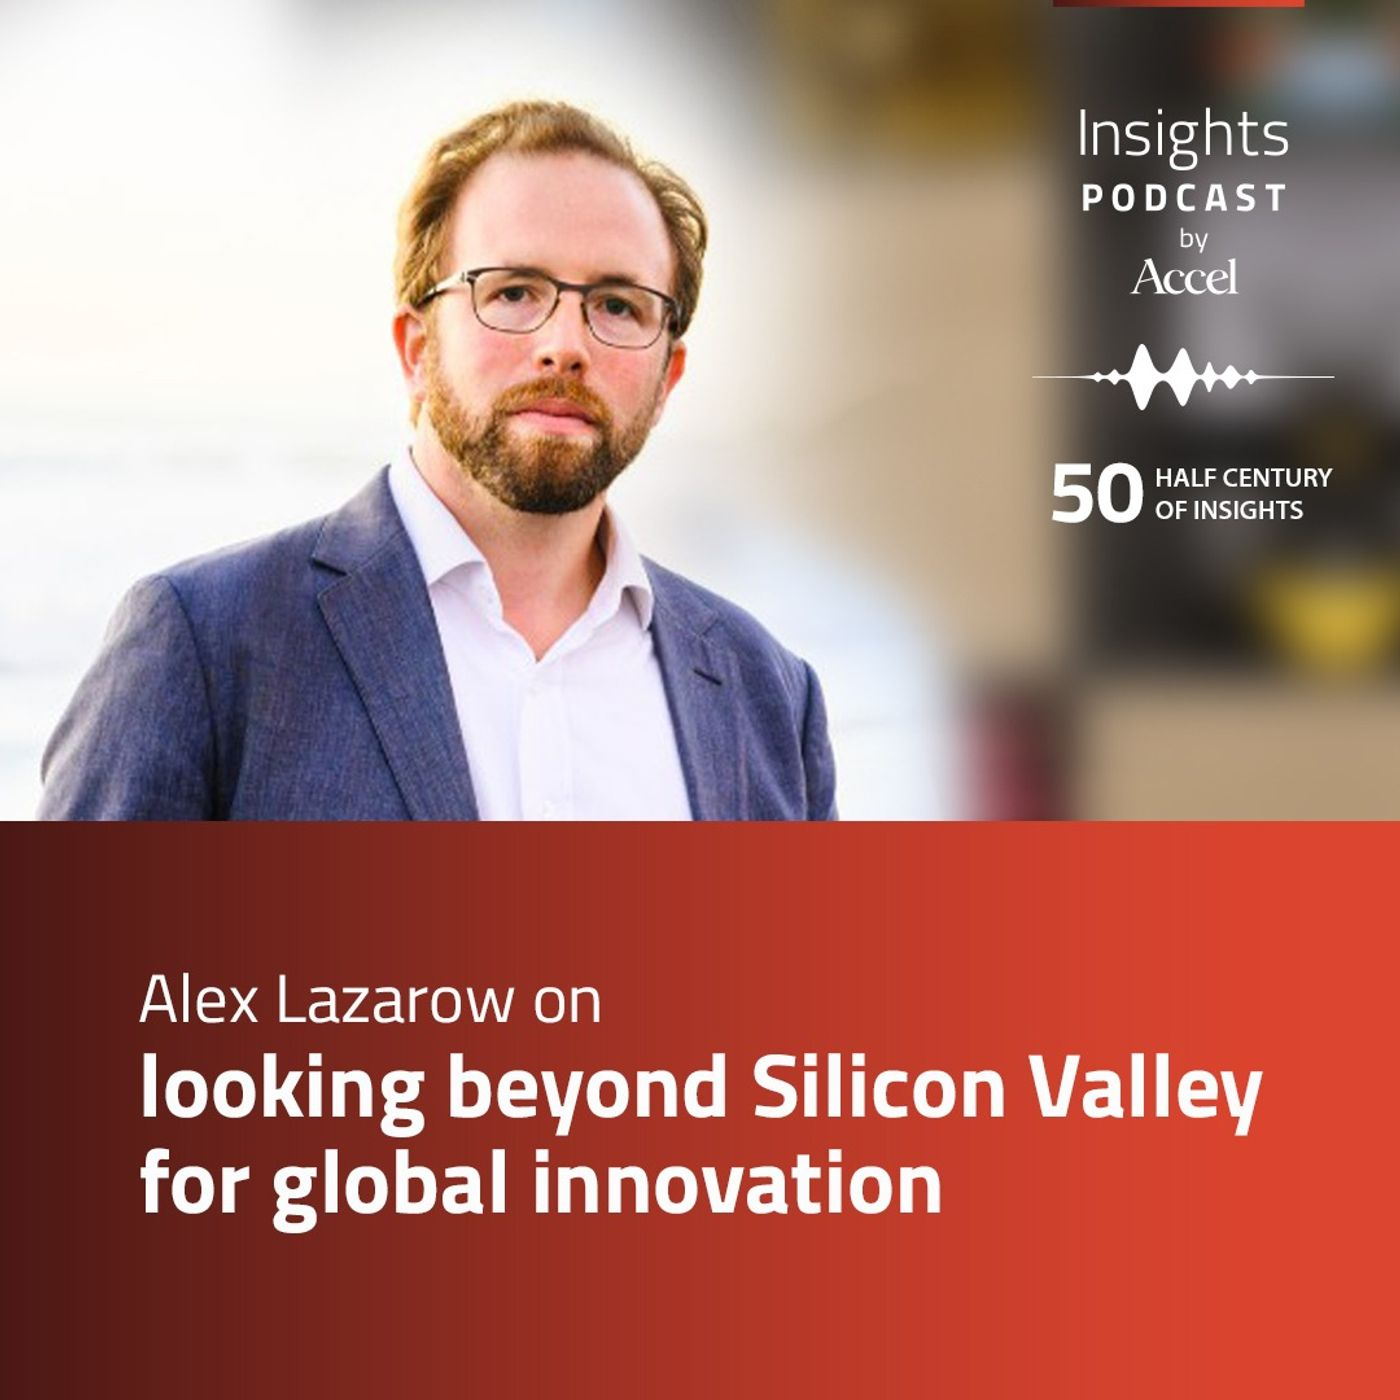 INSIGHTS #51 – Alex Lazarow on looking beyond Silicon Valley for global innovation